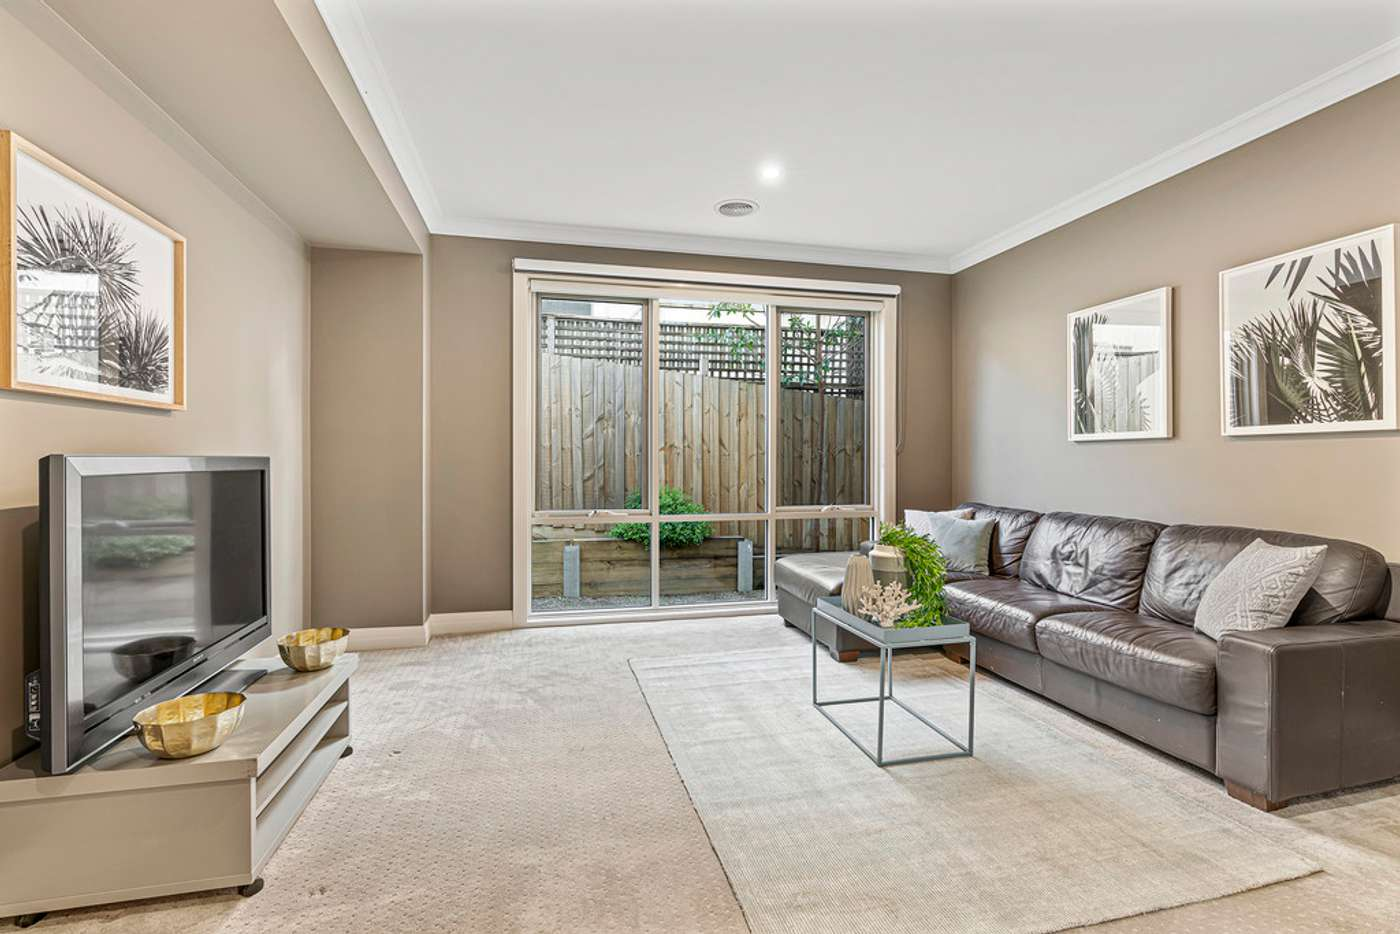 Sixth view of Homely house listing, 34 Tower Road, Balwyn North VIC 3104